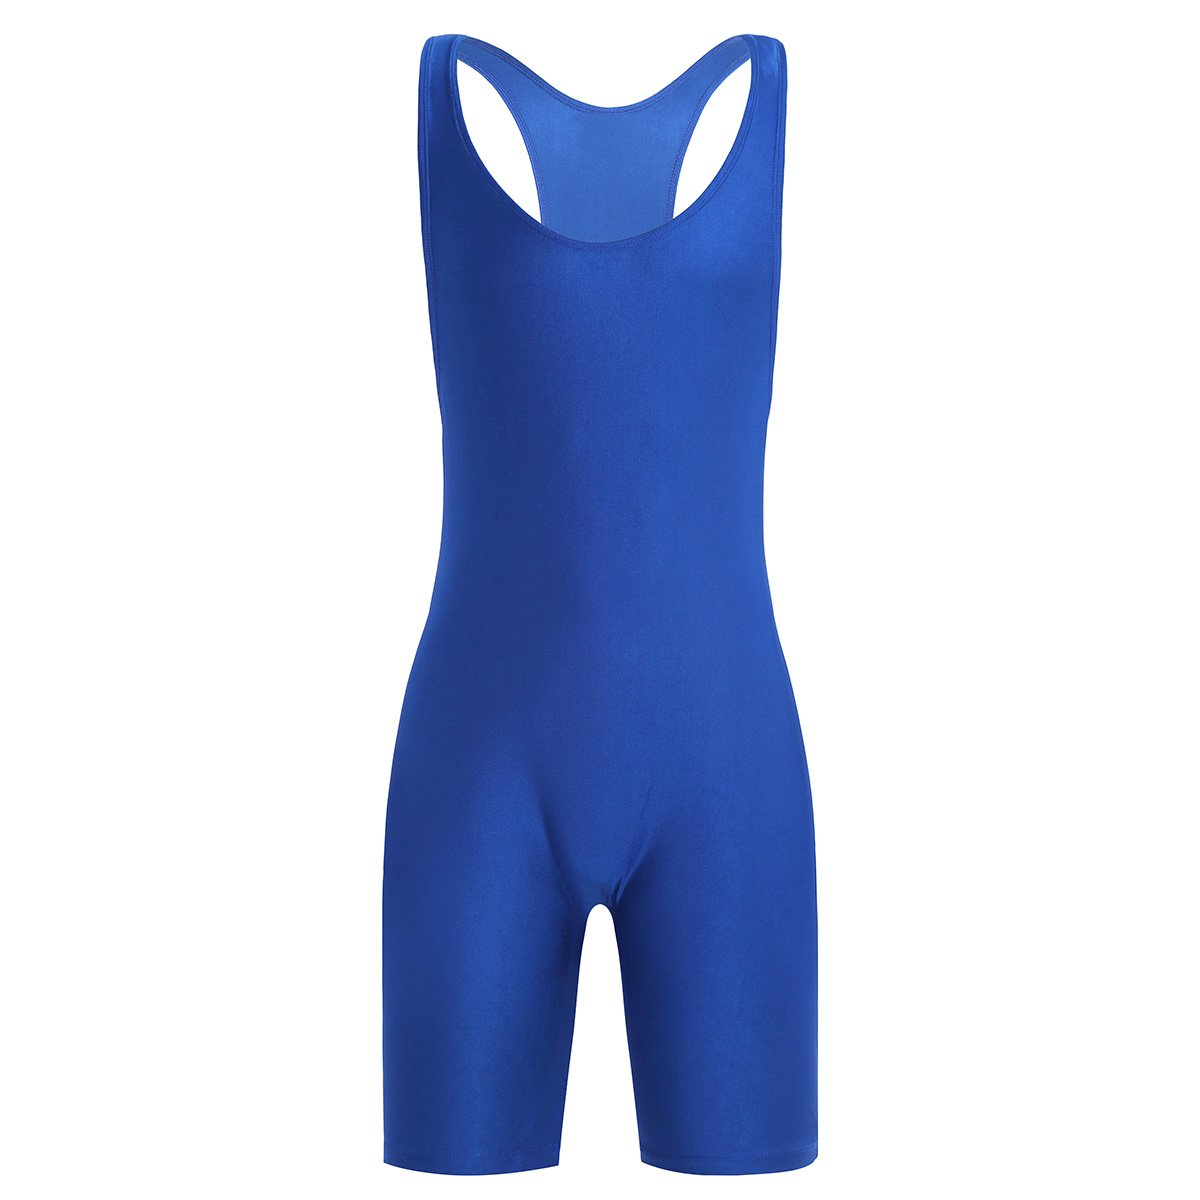 Freebily Men's One-Piece Boxers Leotard Wrestling Singlet Bodysuit Underwear Sportswear Blue X-Large